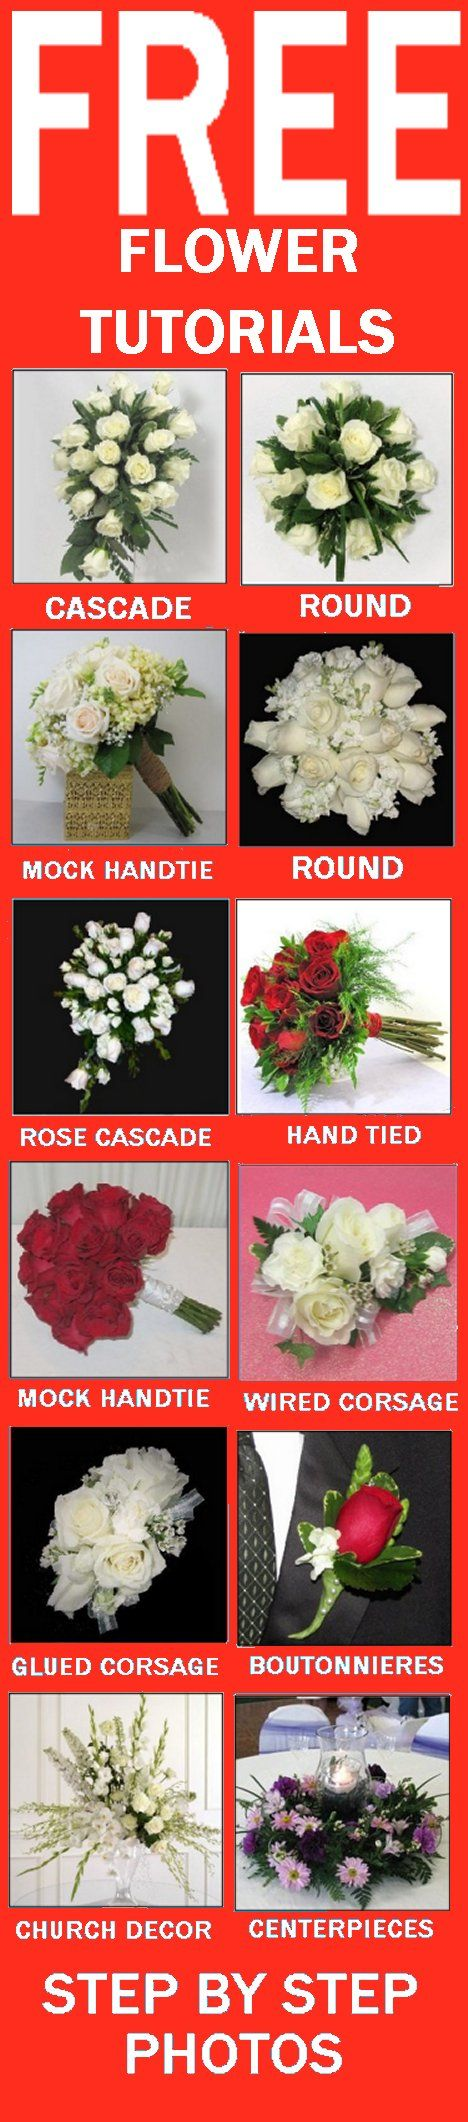 Winter wedding bouquets free flower tutorials learn how to make winter wedding bouquets free flower tutorials learn how to make bridal bouquets wedding corsages groom boutonniere church decorations and rec izmirmasajfo Choice Image